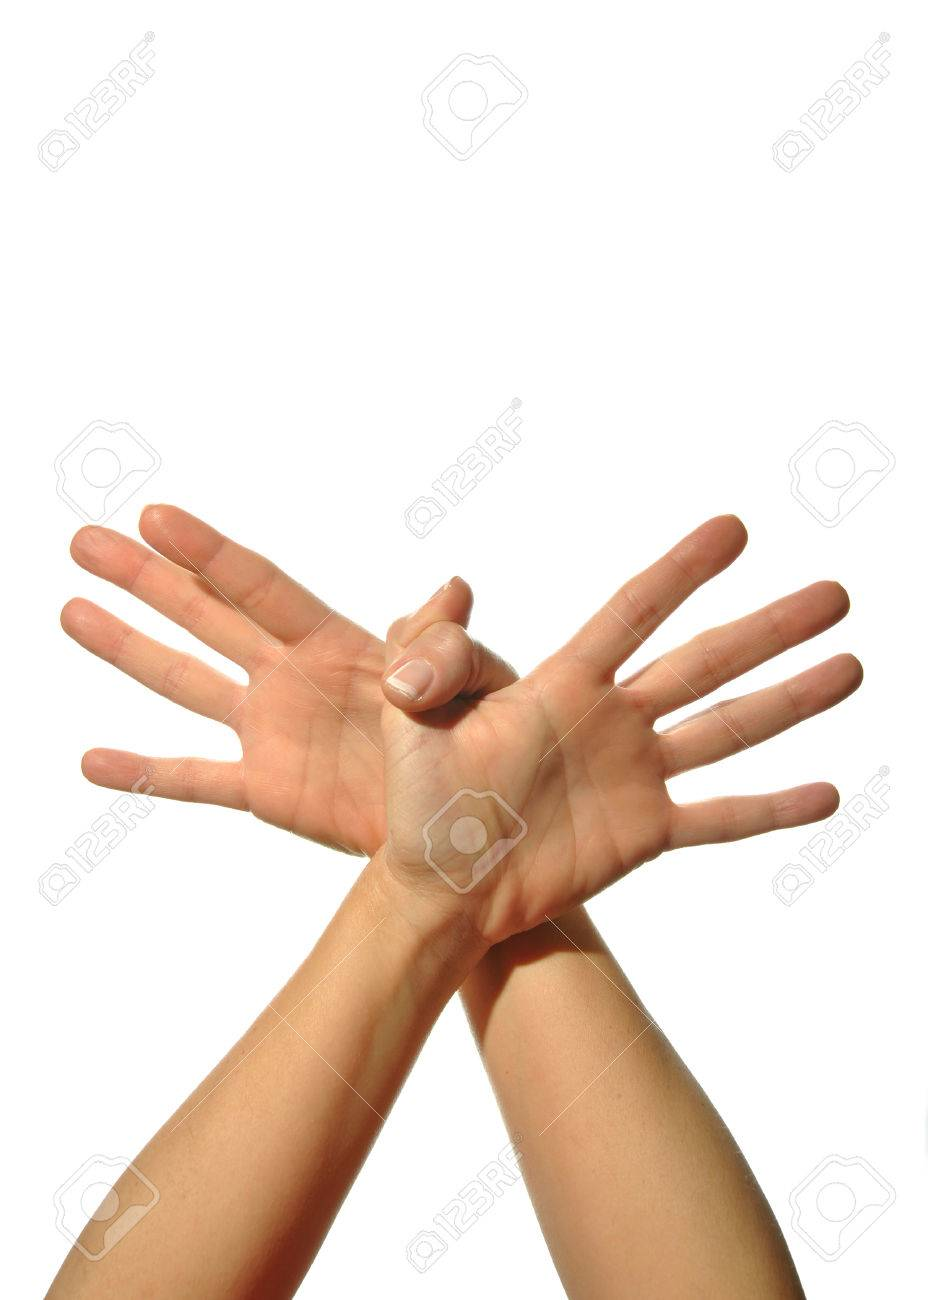 mudra hands poses on white background stock photo picture and